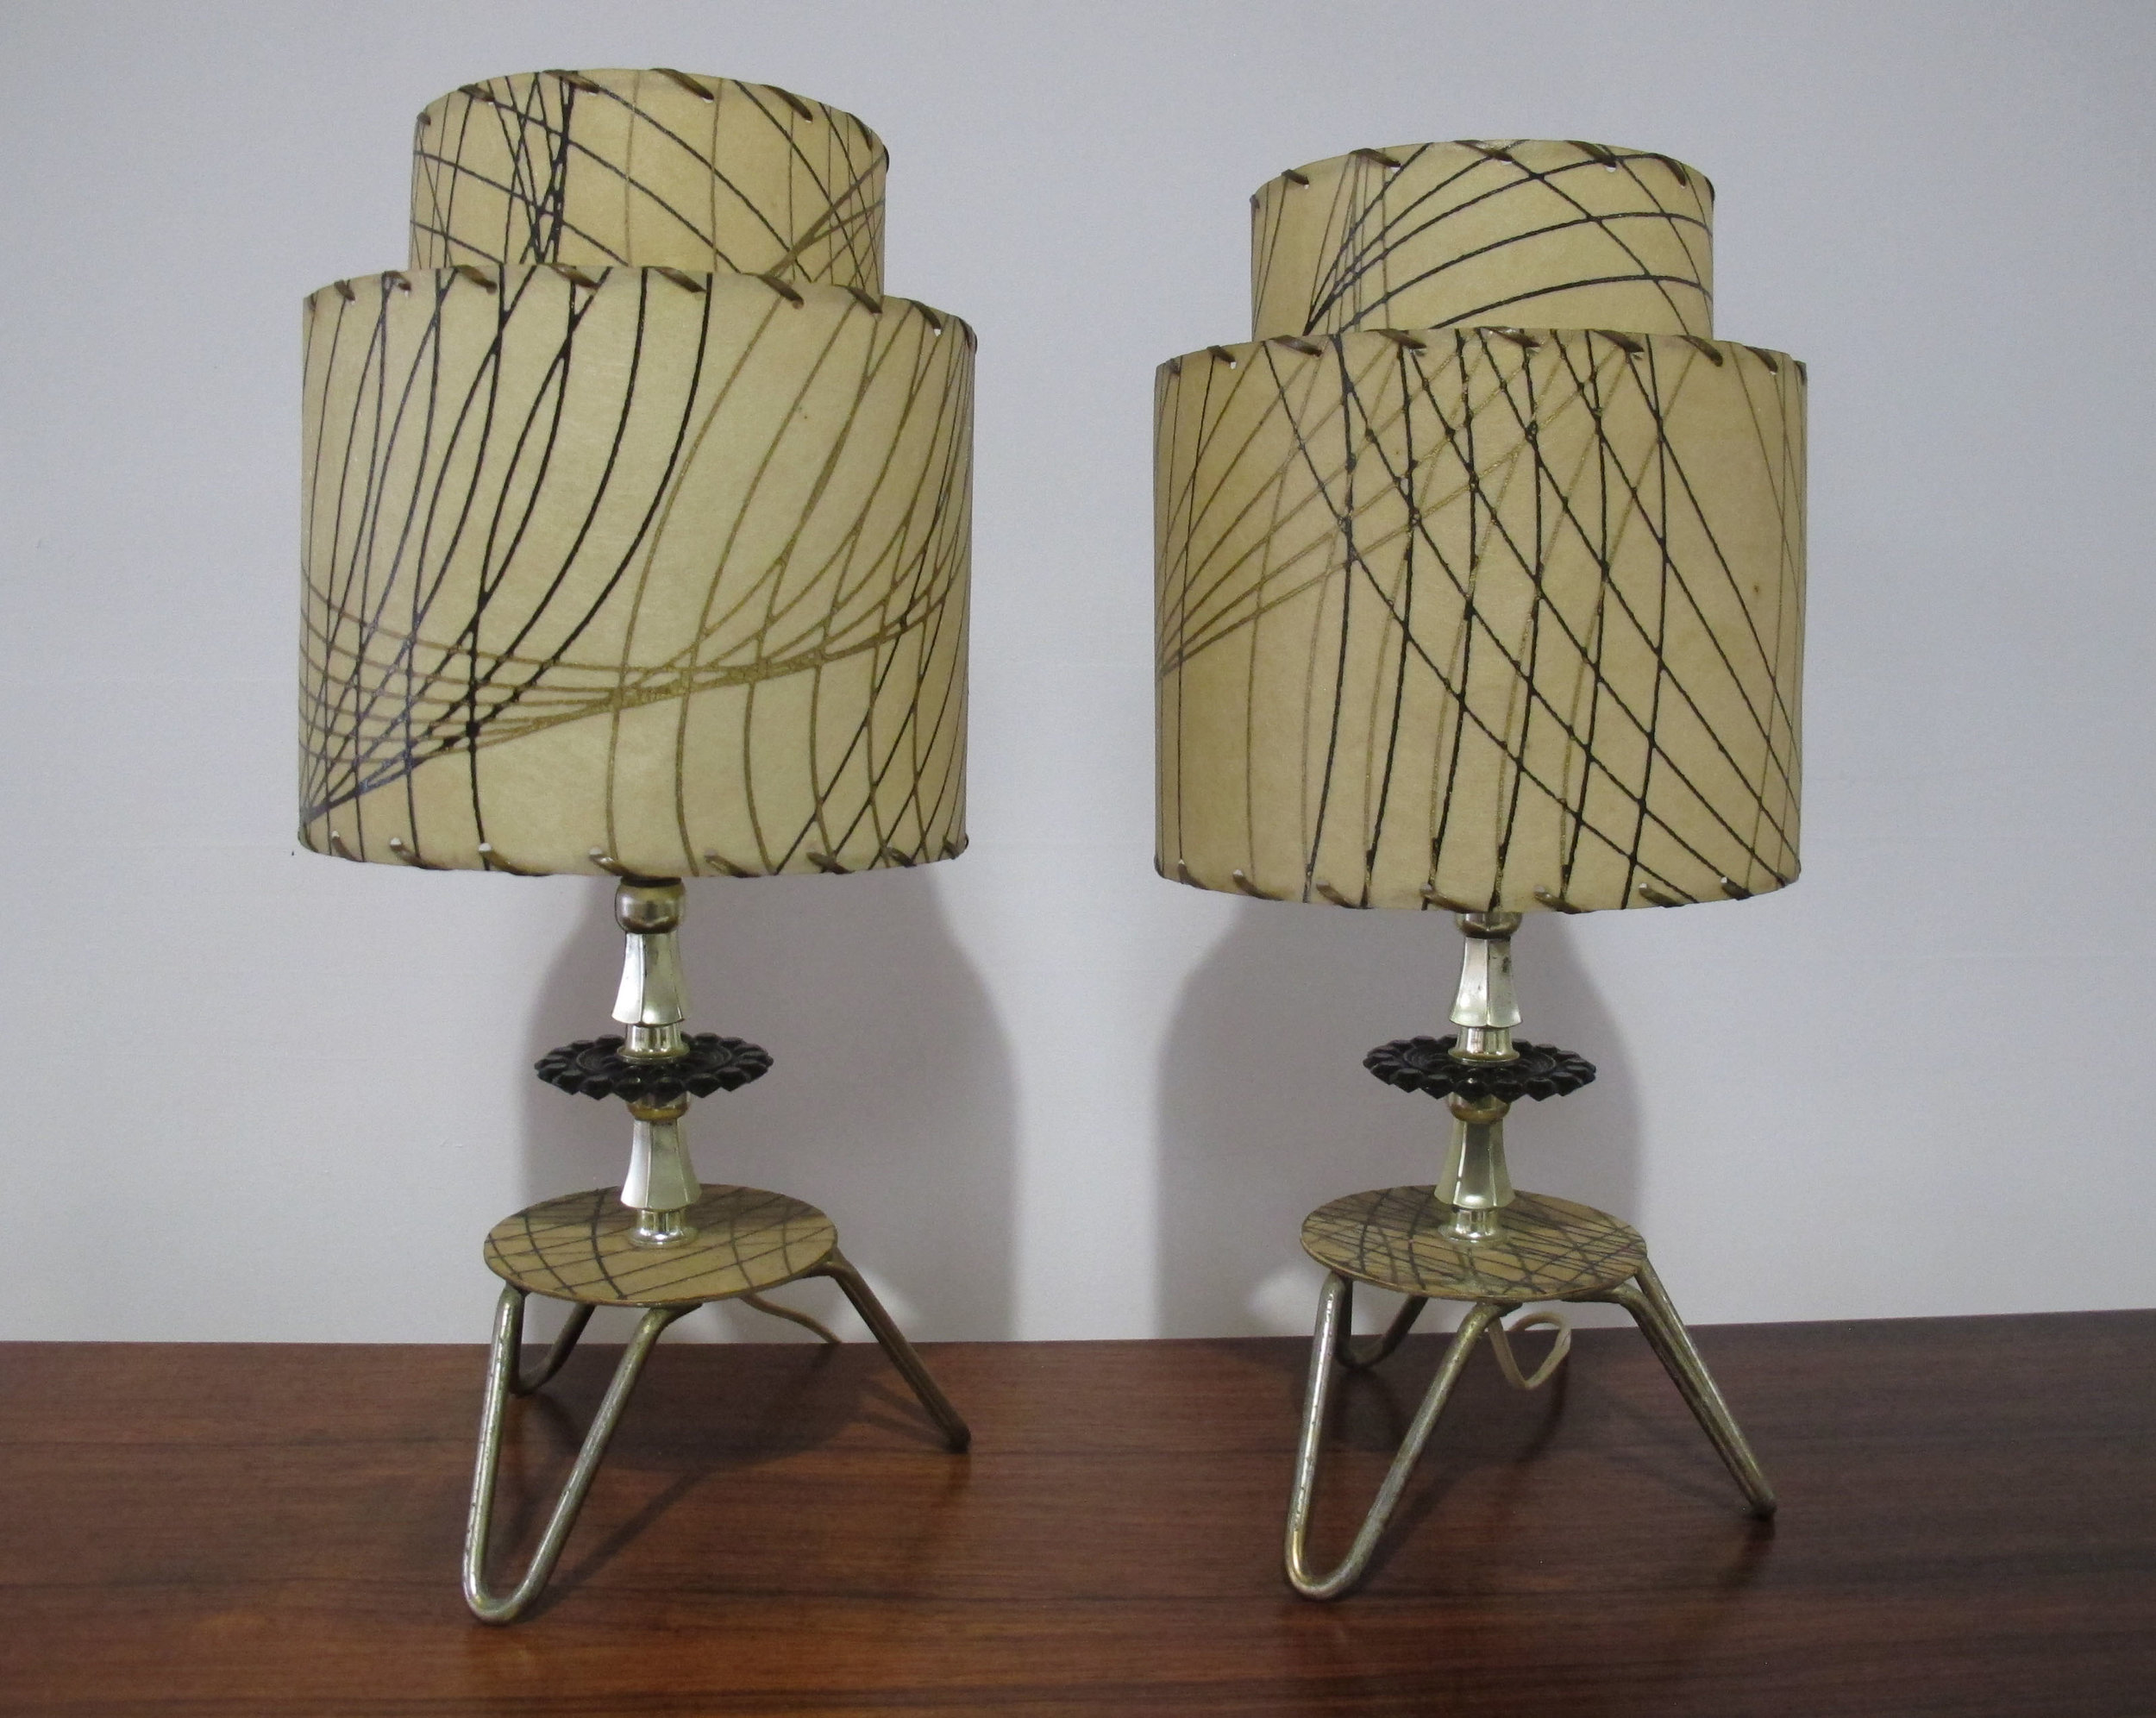 PAIR OF 1950S ATOMIC TABLE LAMPS